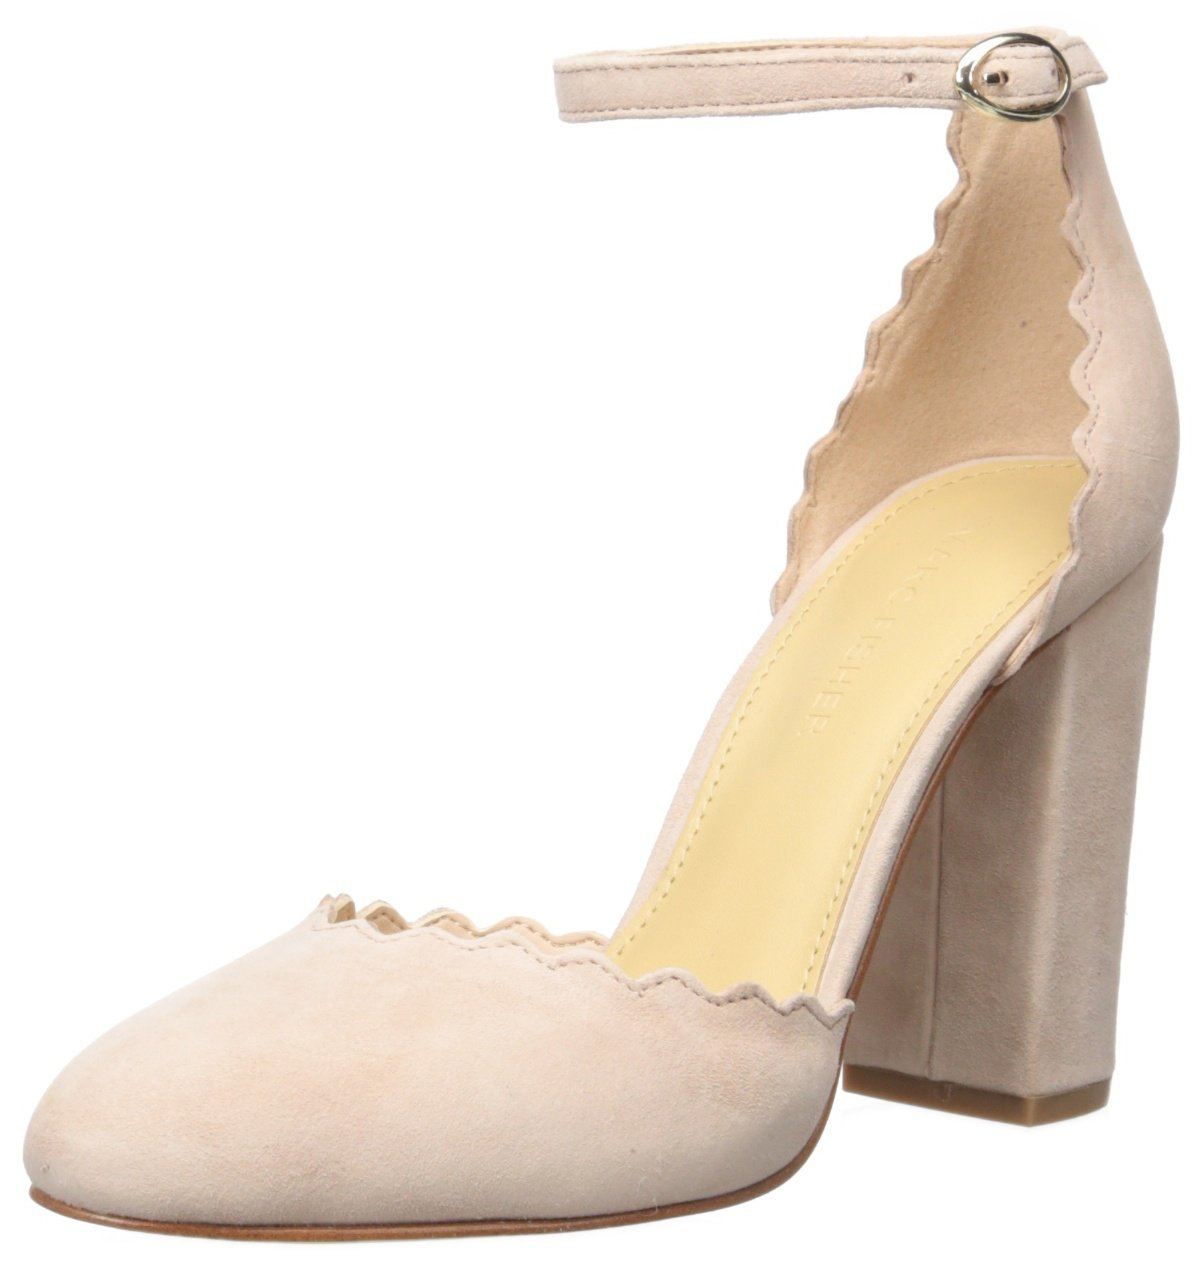 Marc Fisher Women's Sahar Pump B01N7IAMAB 5 B(M) US|Light Pink